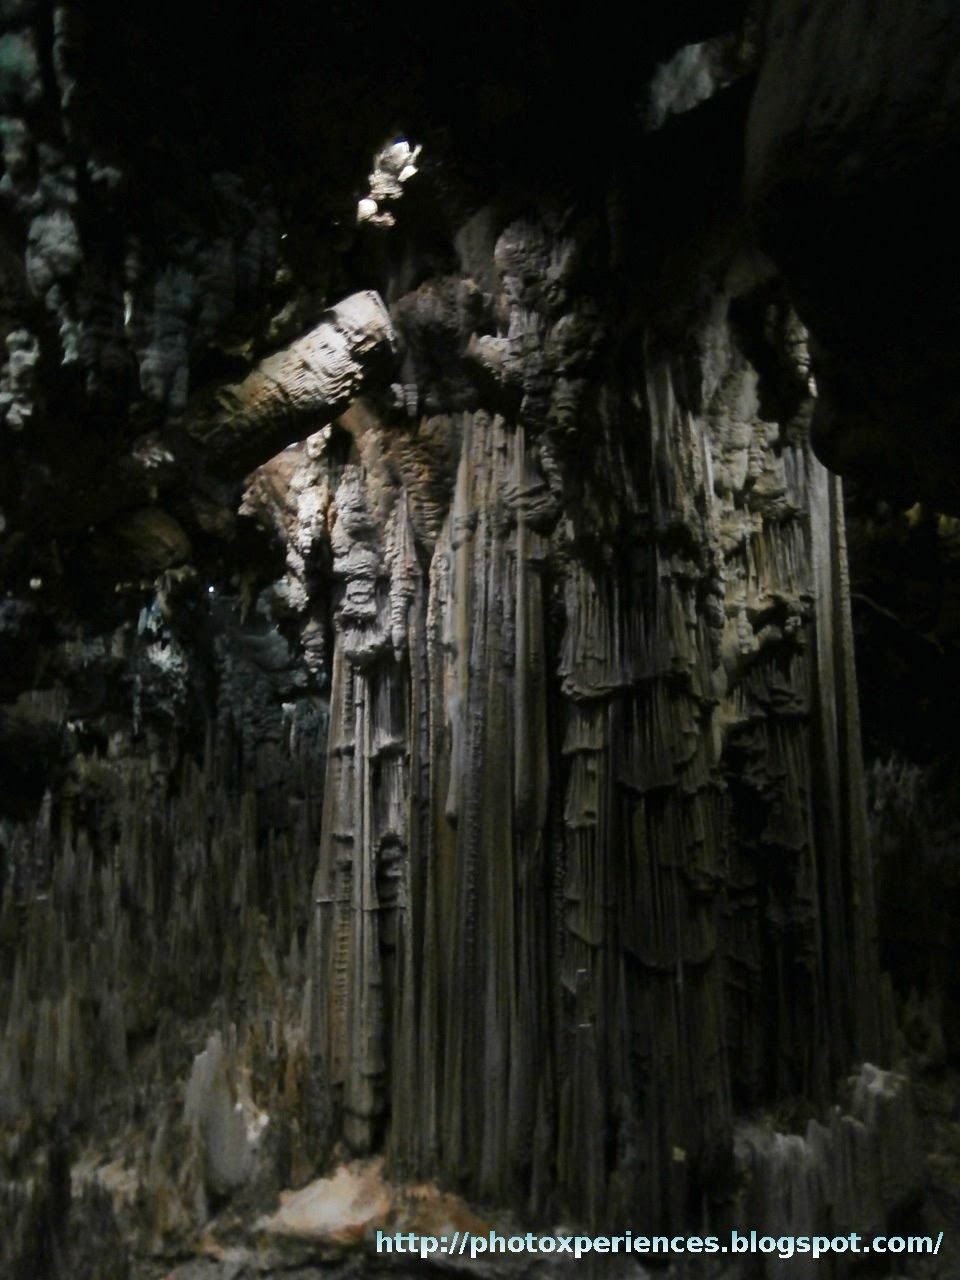 The greatest column of the world, in the caves of Nerja. Detalle de la columna más grande del mundo, en las cuevas de Nerja.